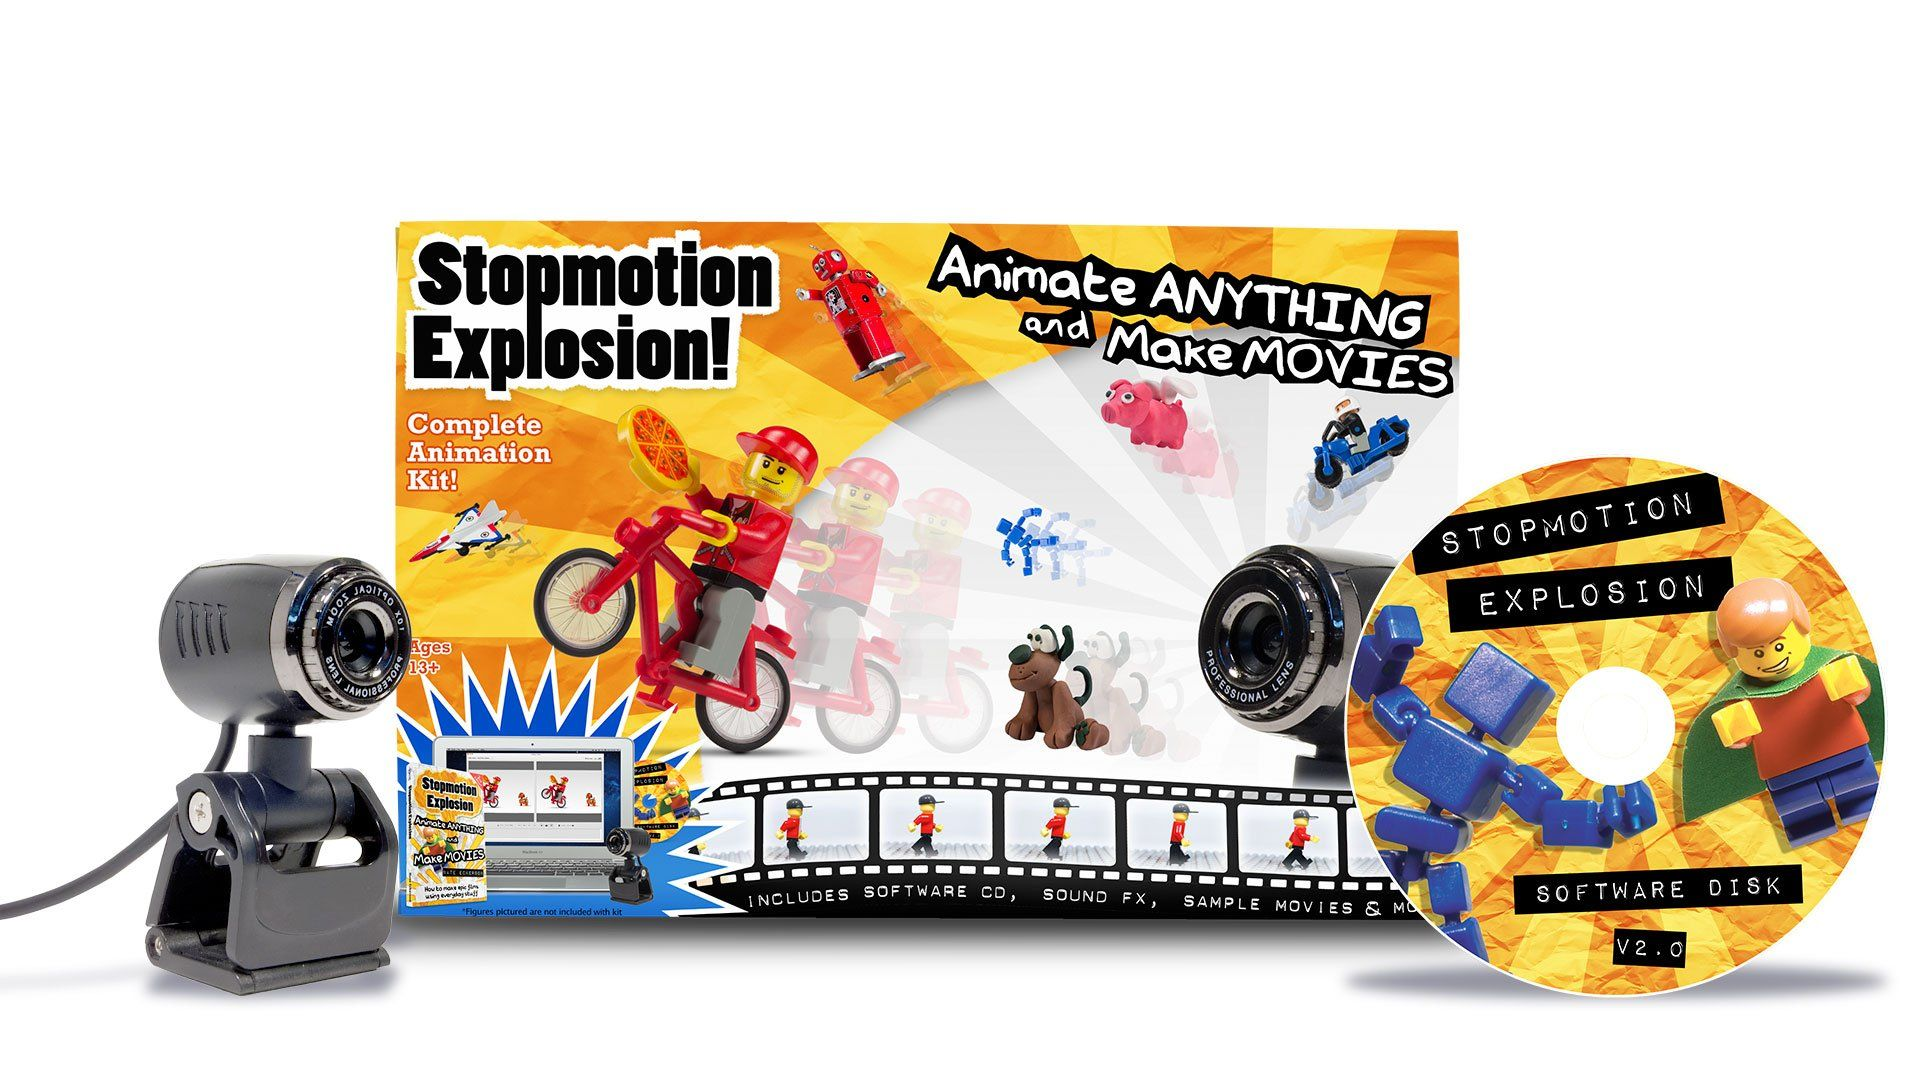 Stopmotion Explosion Complete Stop Motion Animation Kit